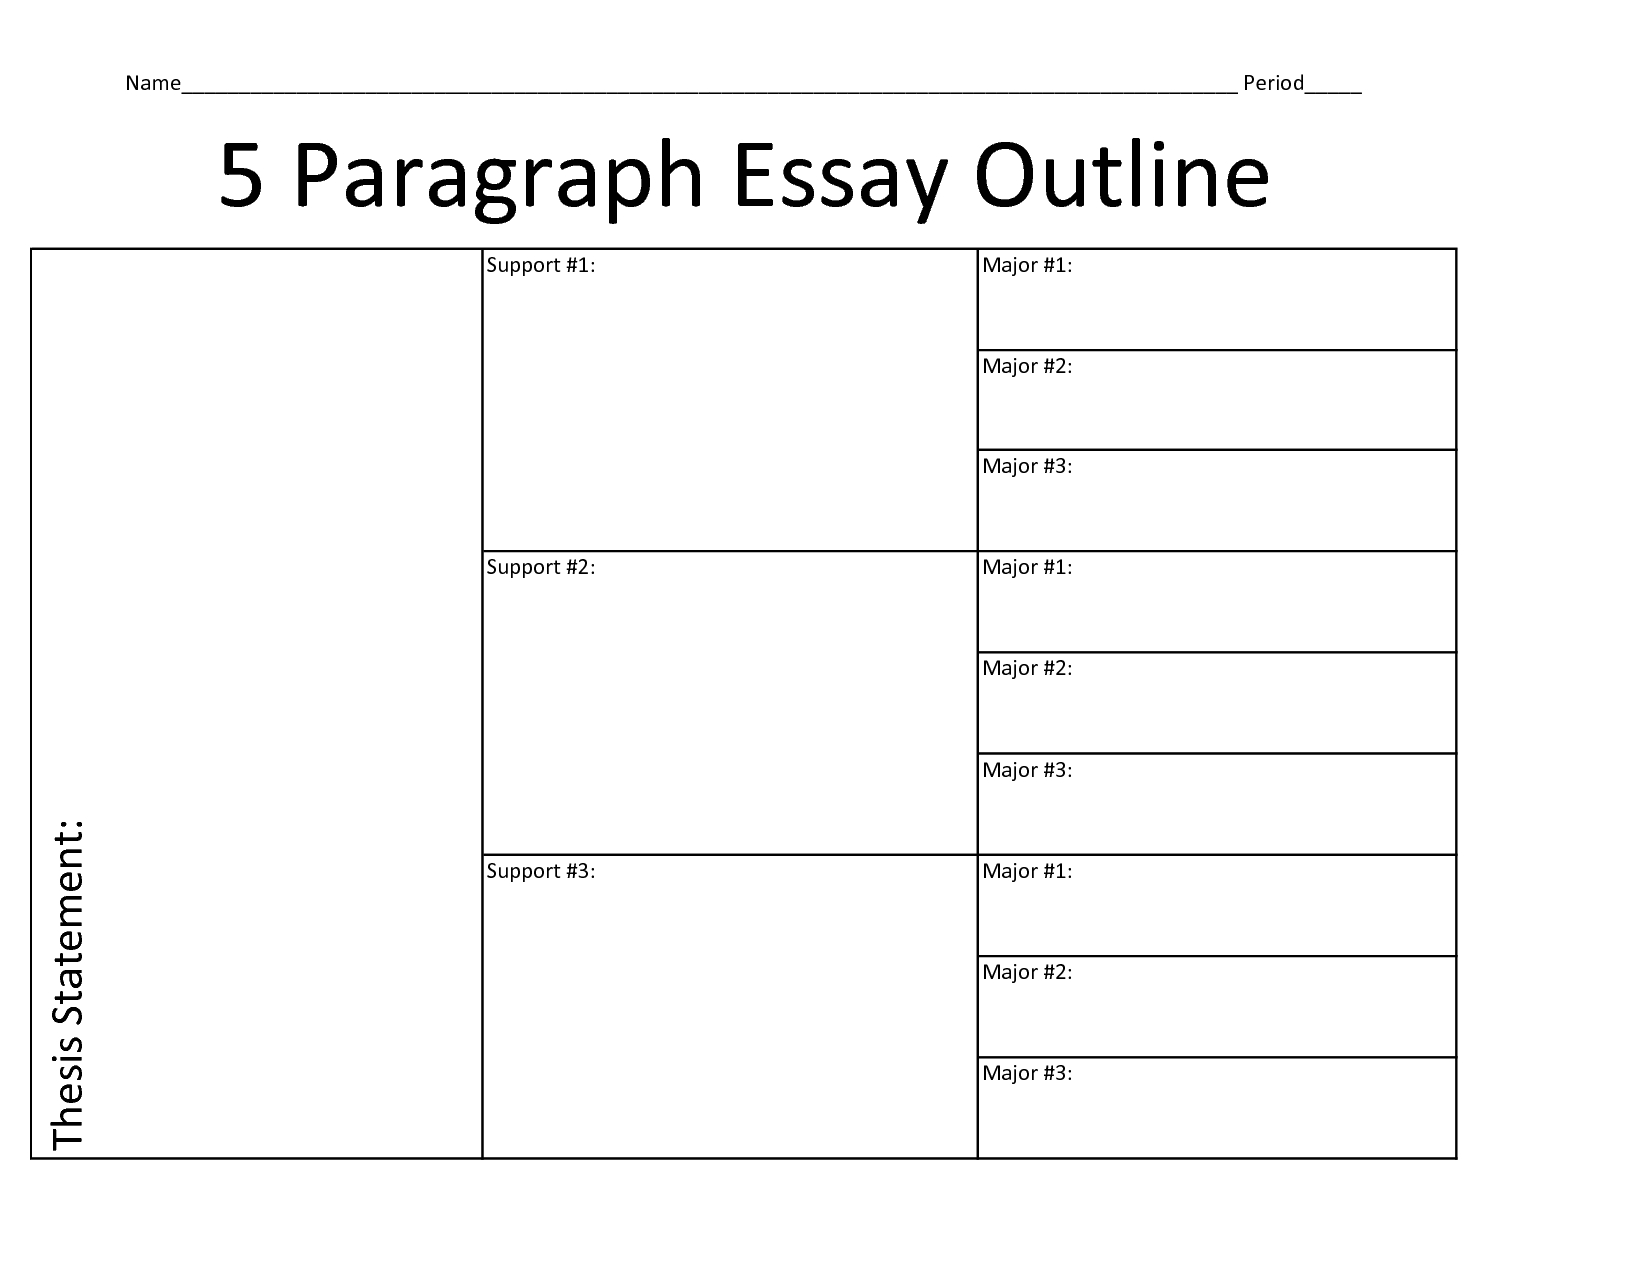 Essay Outline Template | Paragraph Essay Outline- Blank | Write with regard to Blank Essay Outline Format 22524